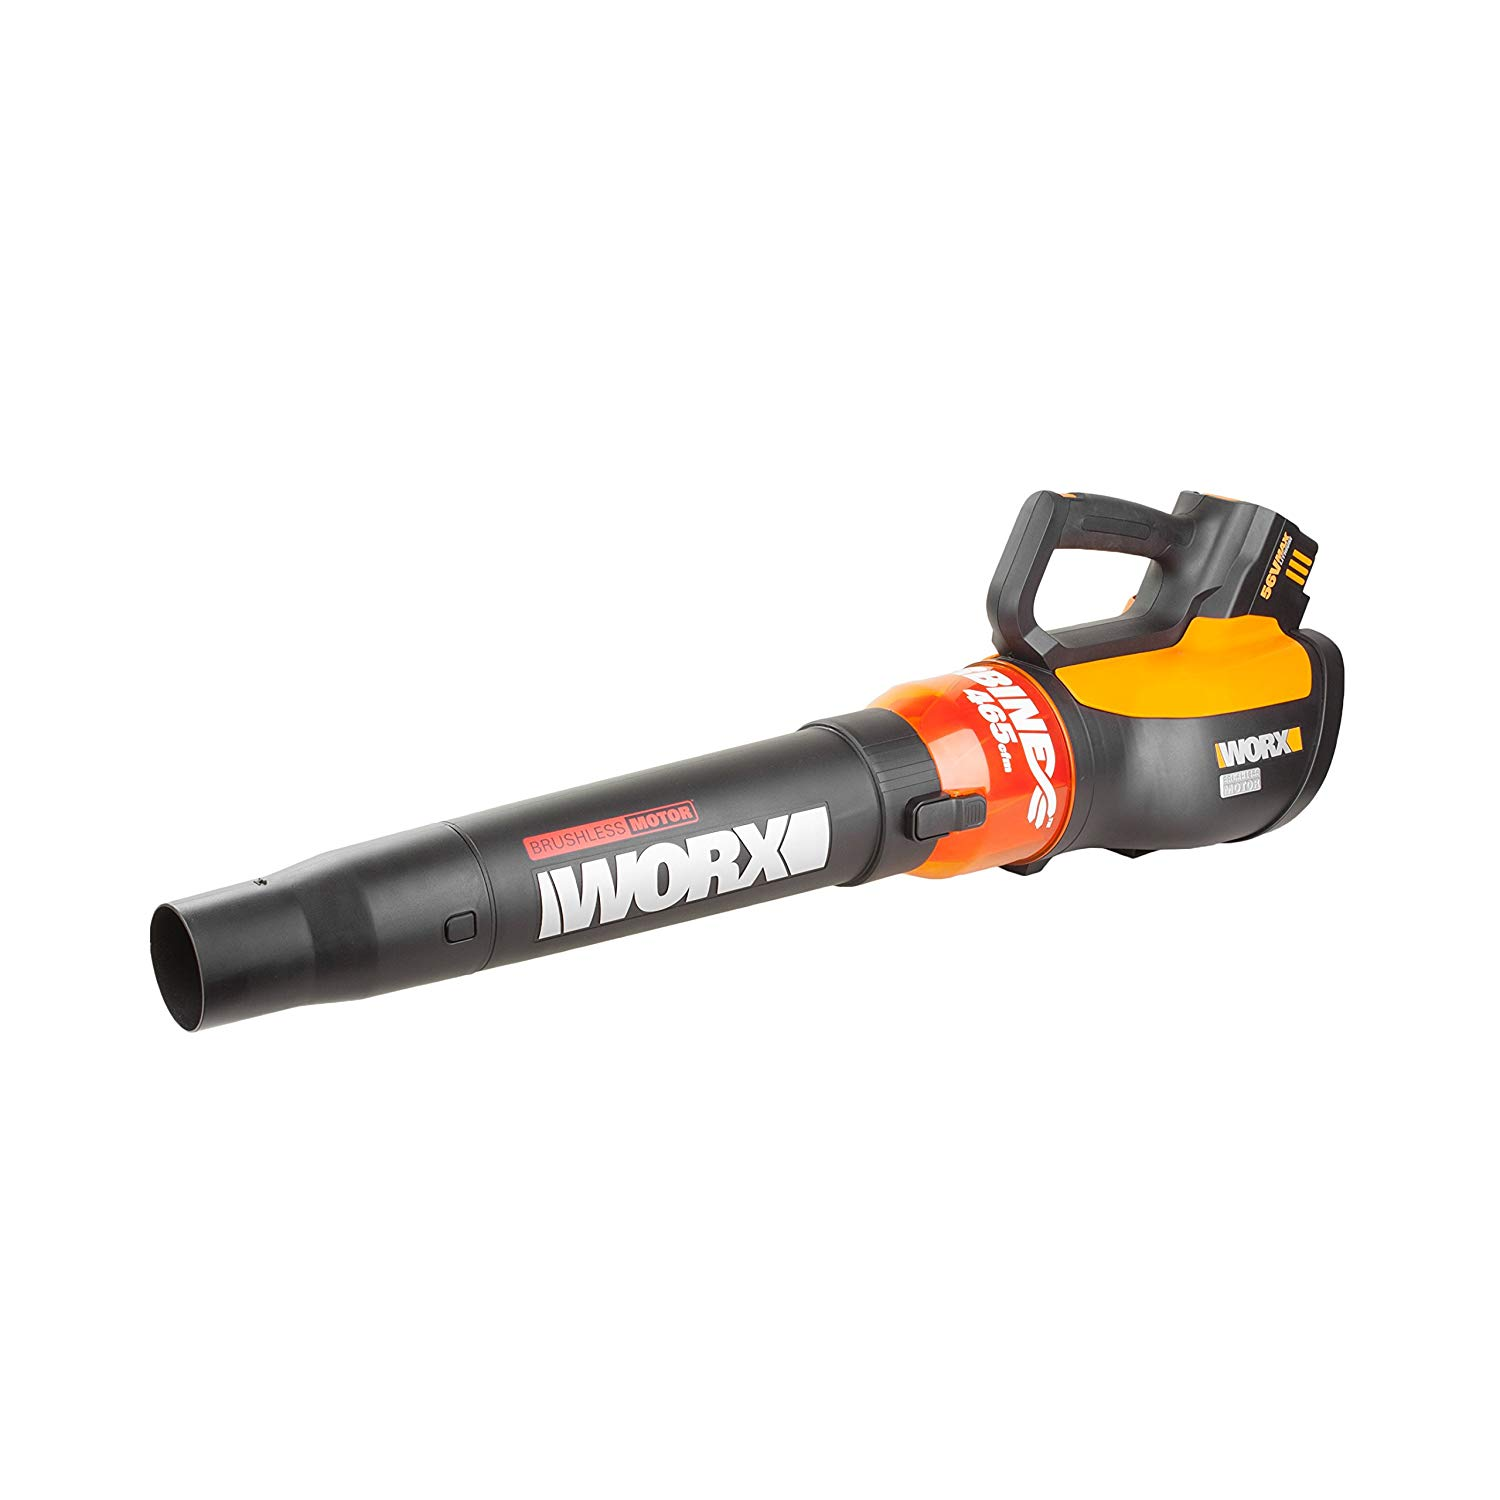 Worx Turbine Cordless Battery-Powered Leaf Blower